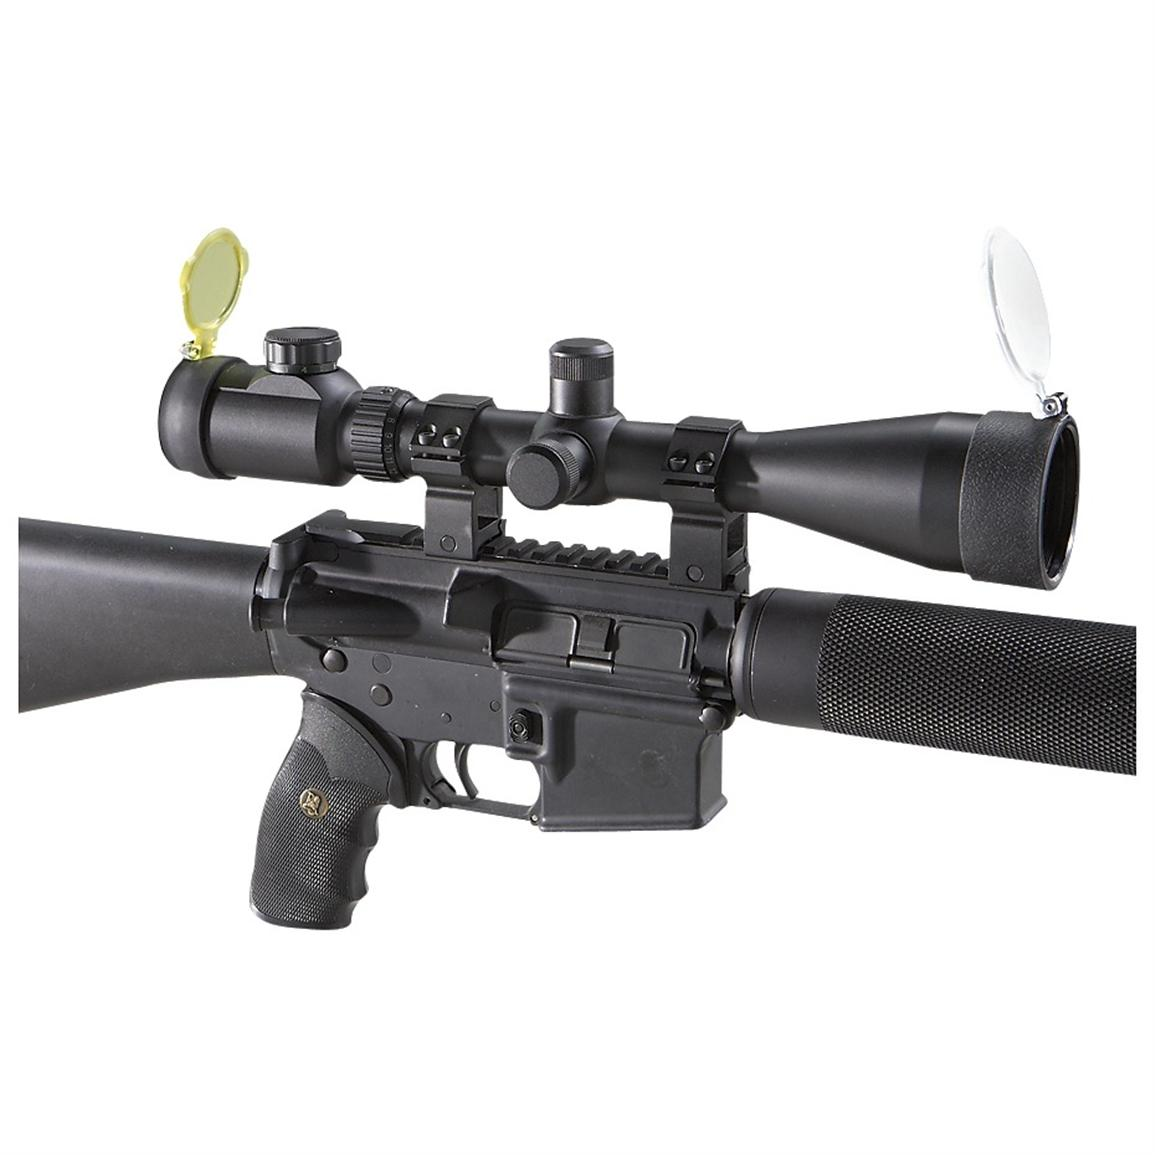 AIM Sports® 3-12x50 mm Scope with Rangefinding Reticle and 30 mm Rings, Matte Black